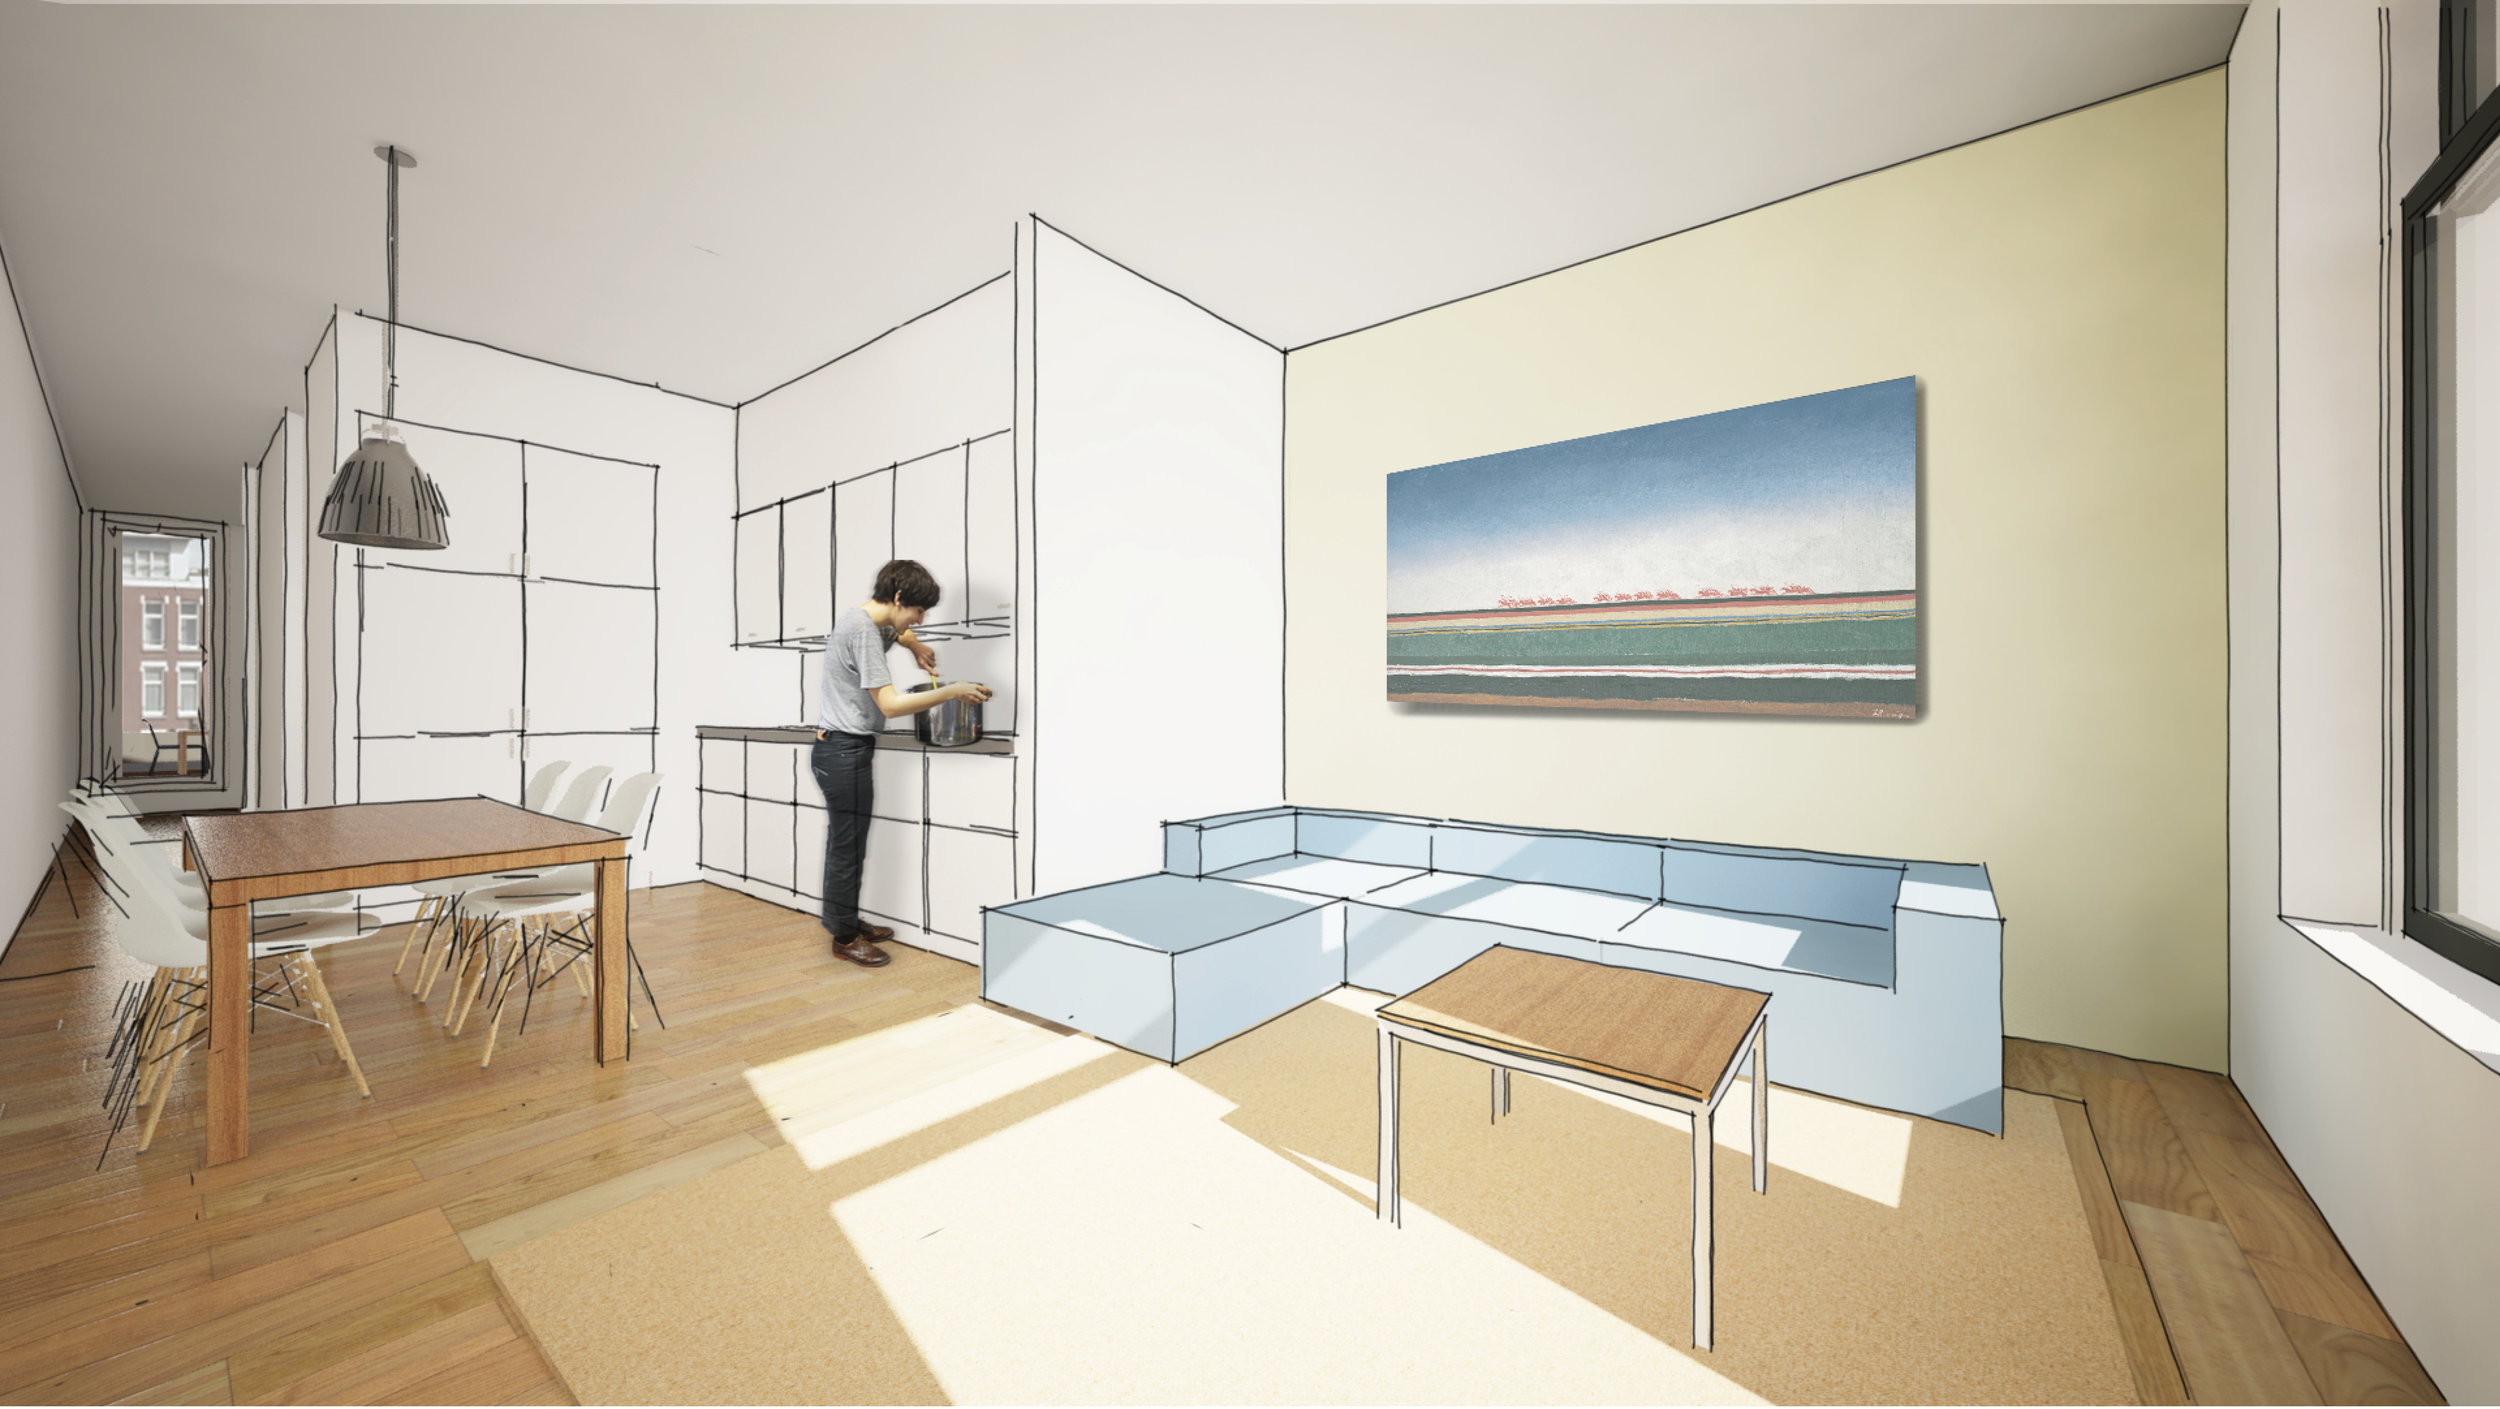 when the sliding doors are open the total length of the apartment can be experienced